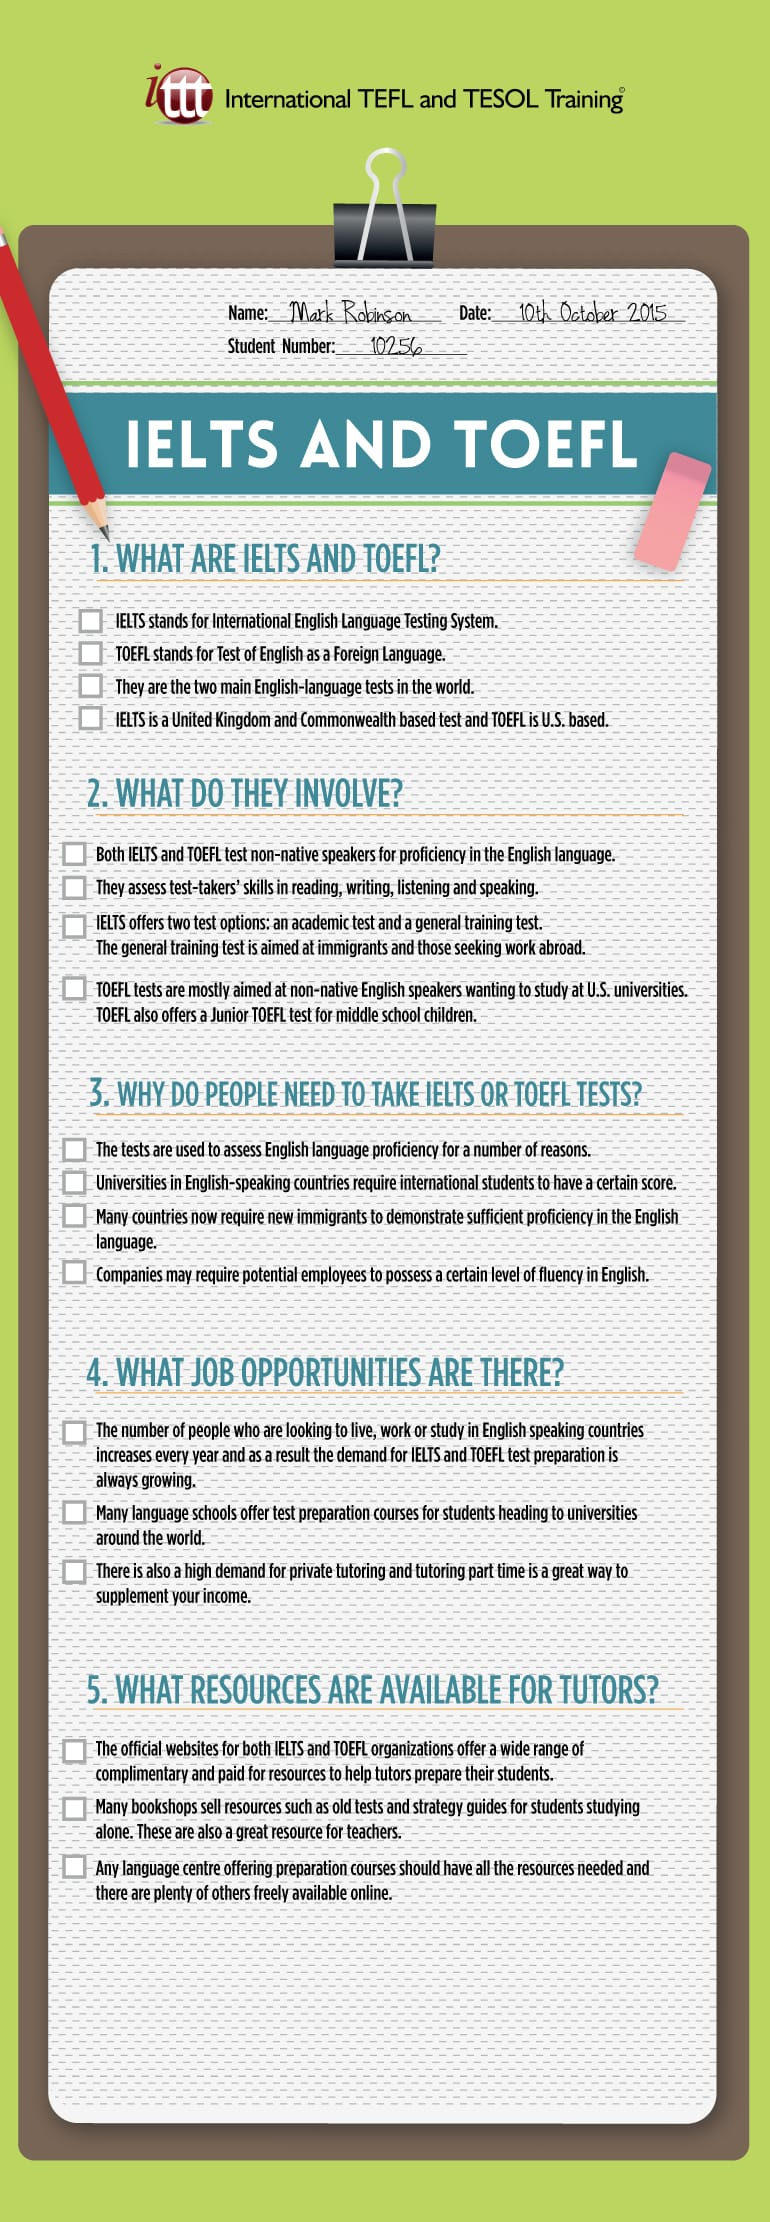 Infographic IELTS and TOEFL